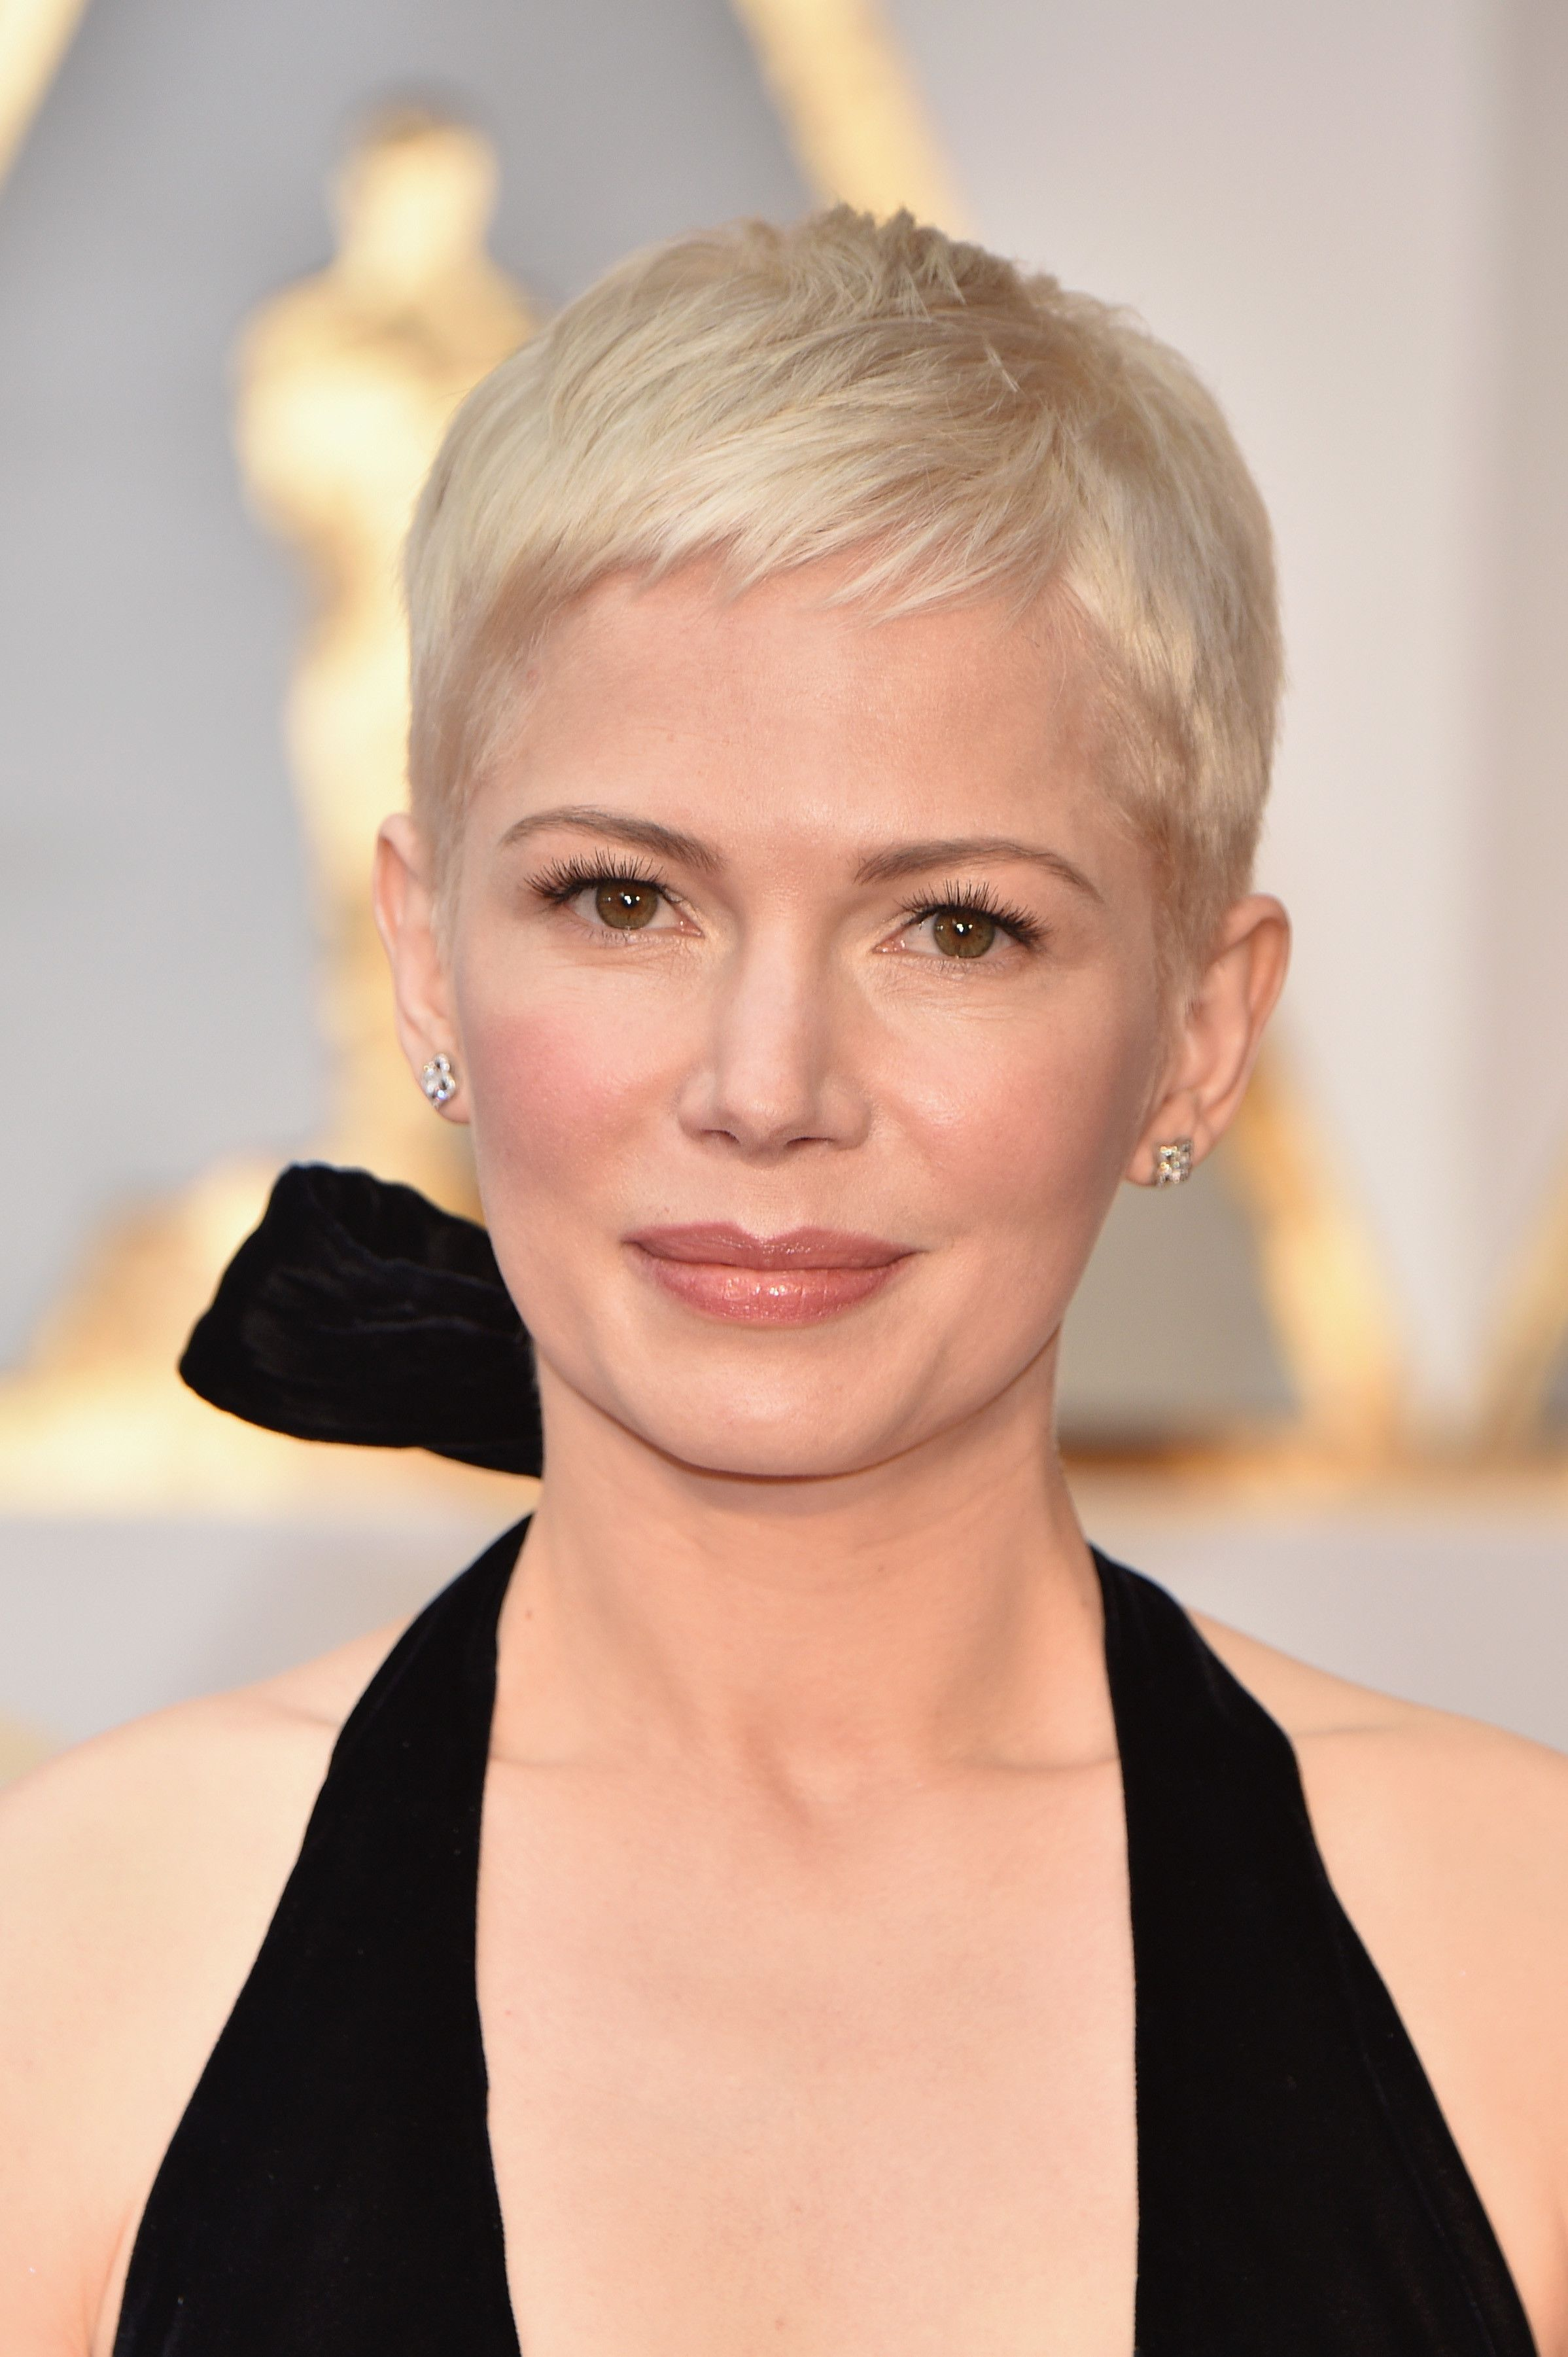 The Short Haircut That Ruled the Oscars Red Carpet